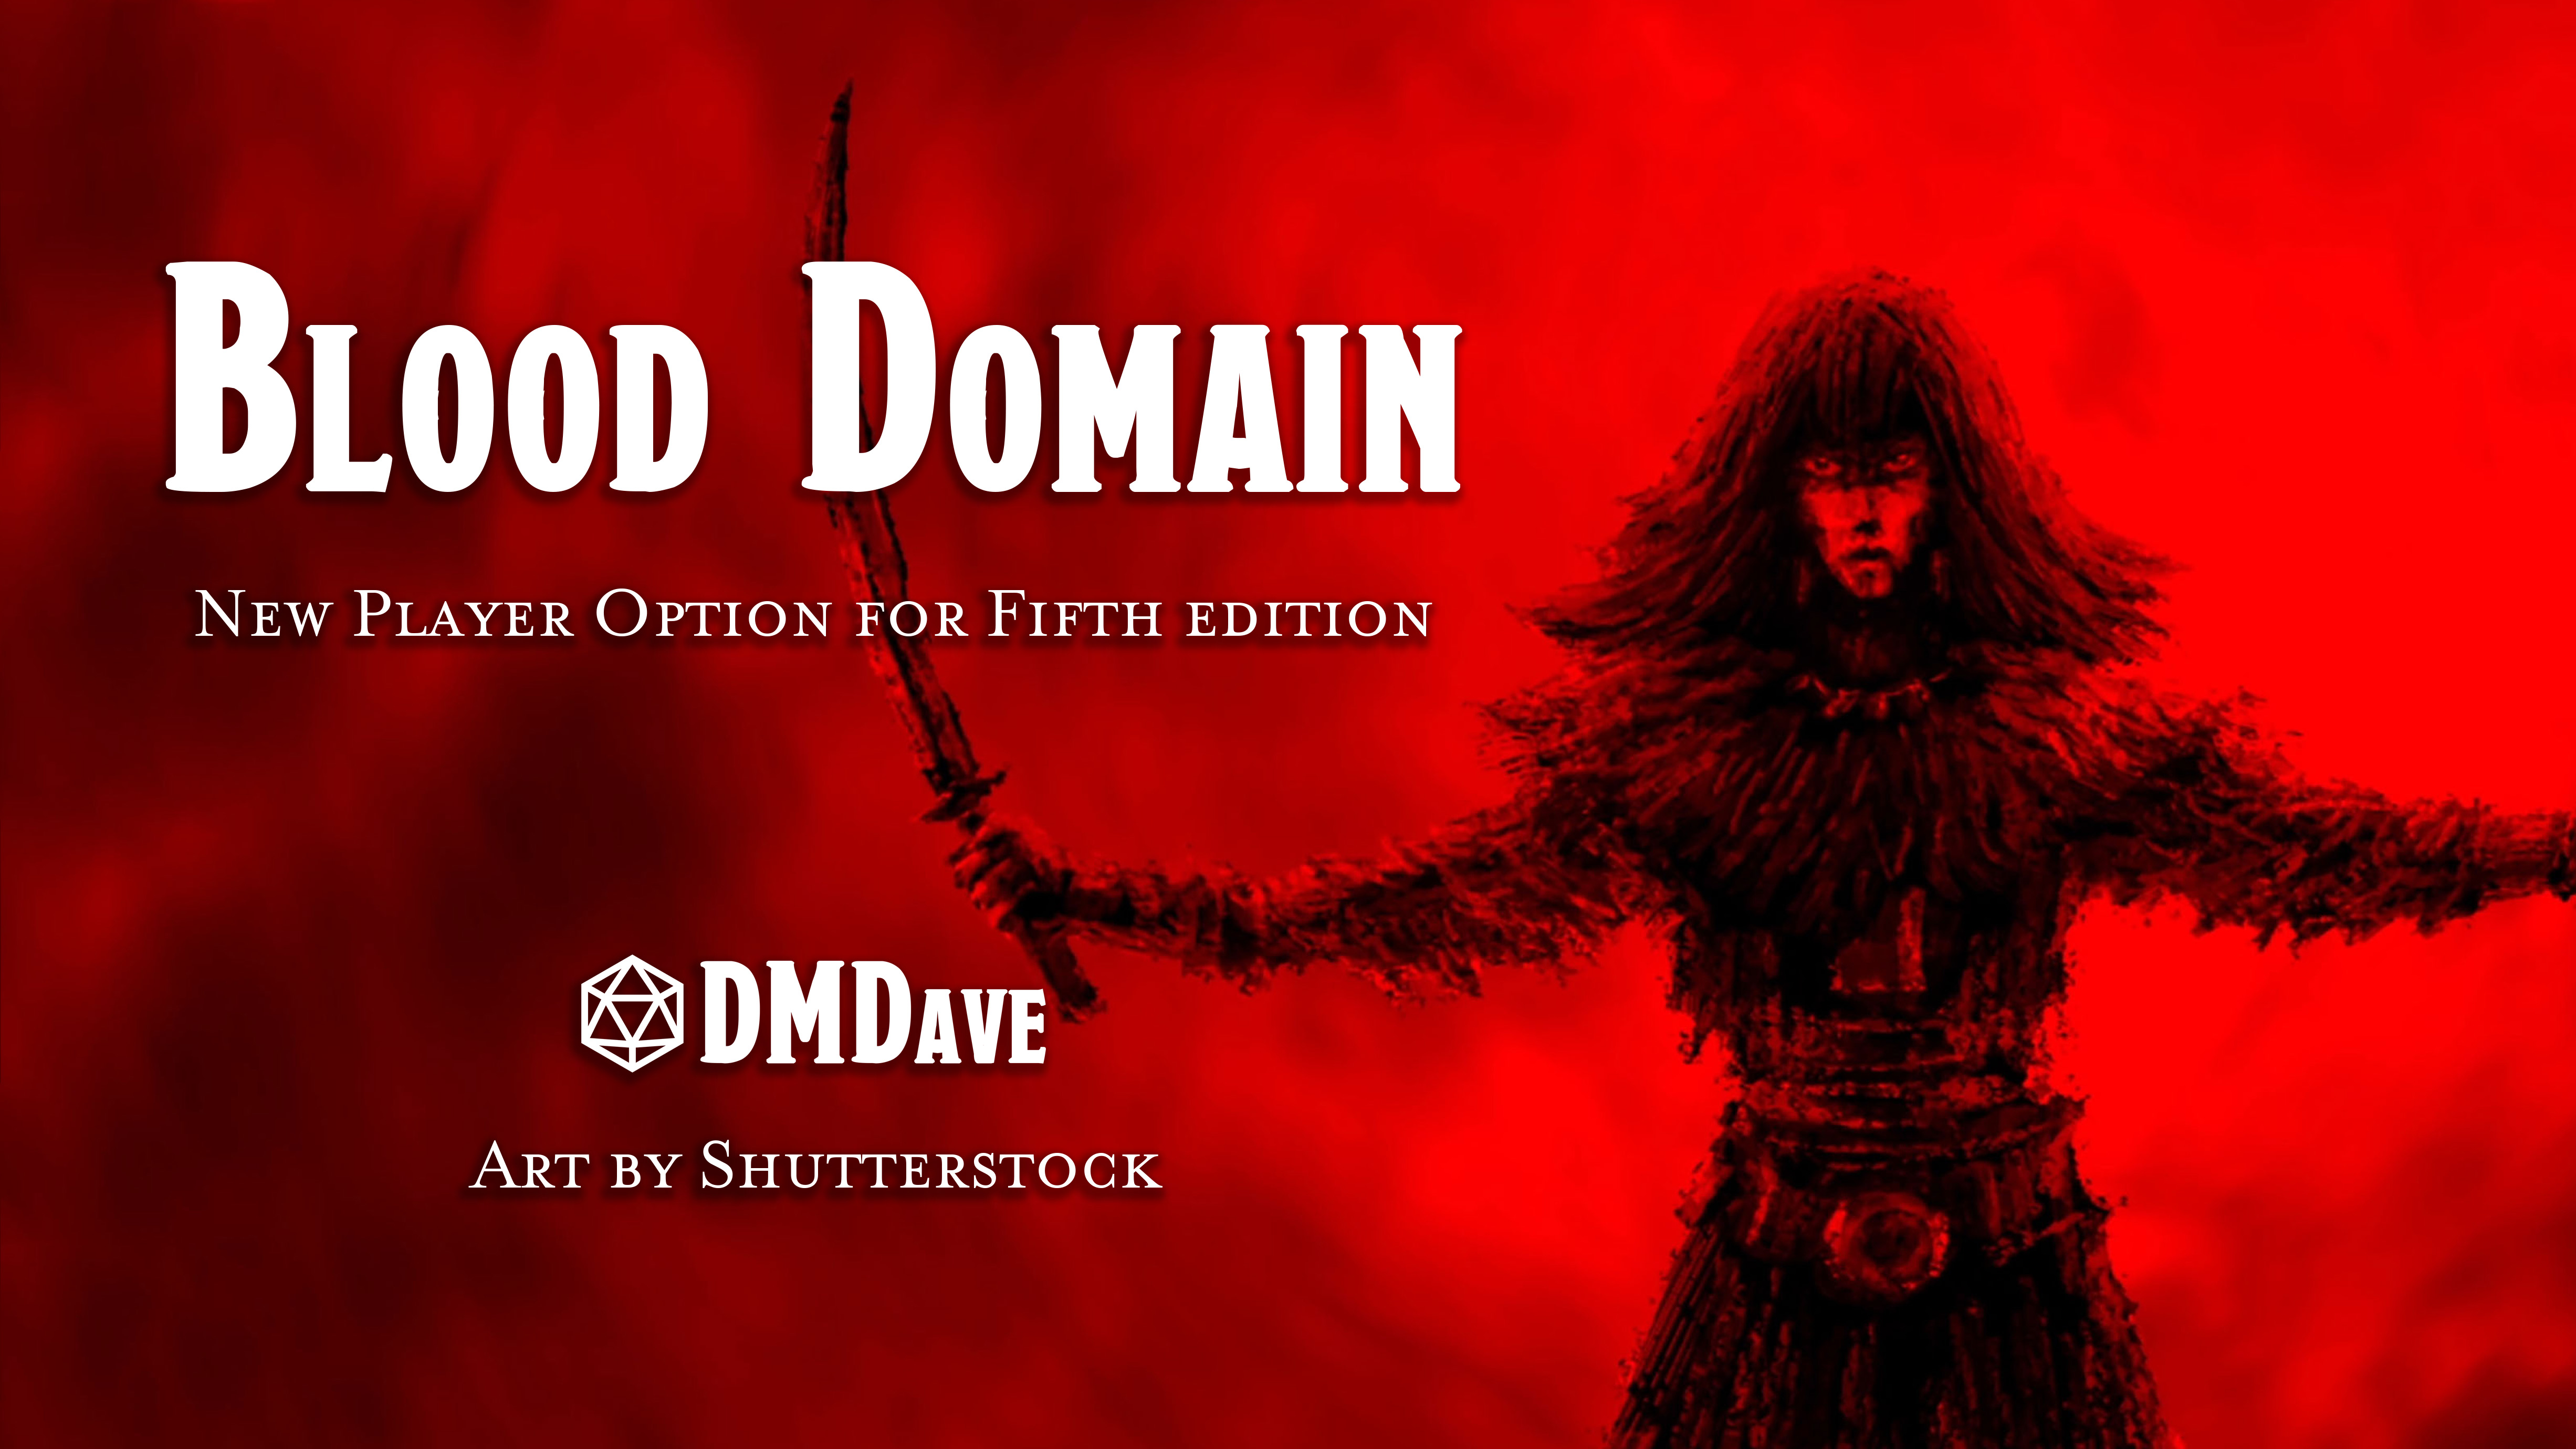 Blood Domain | New Player Option for Fifth Edition